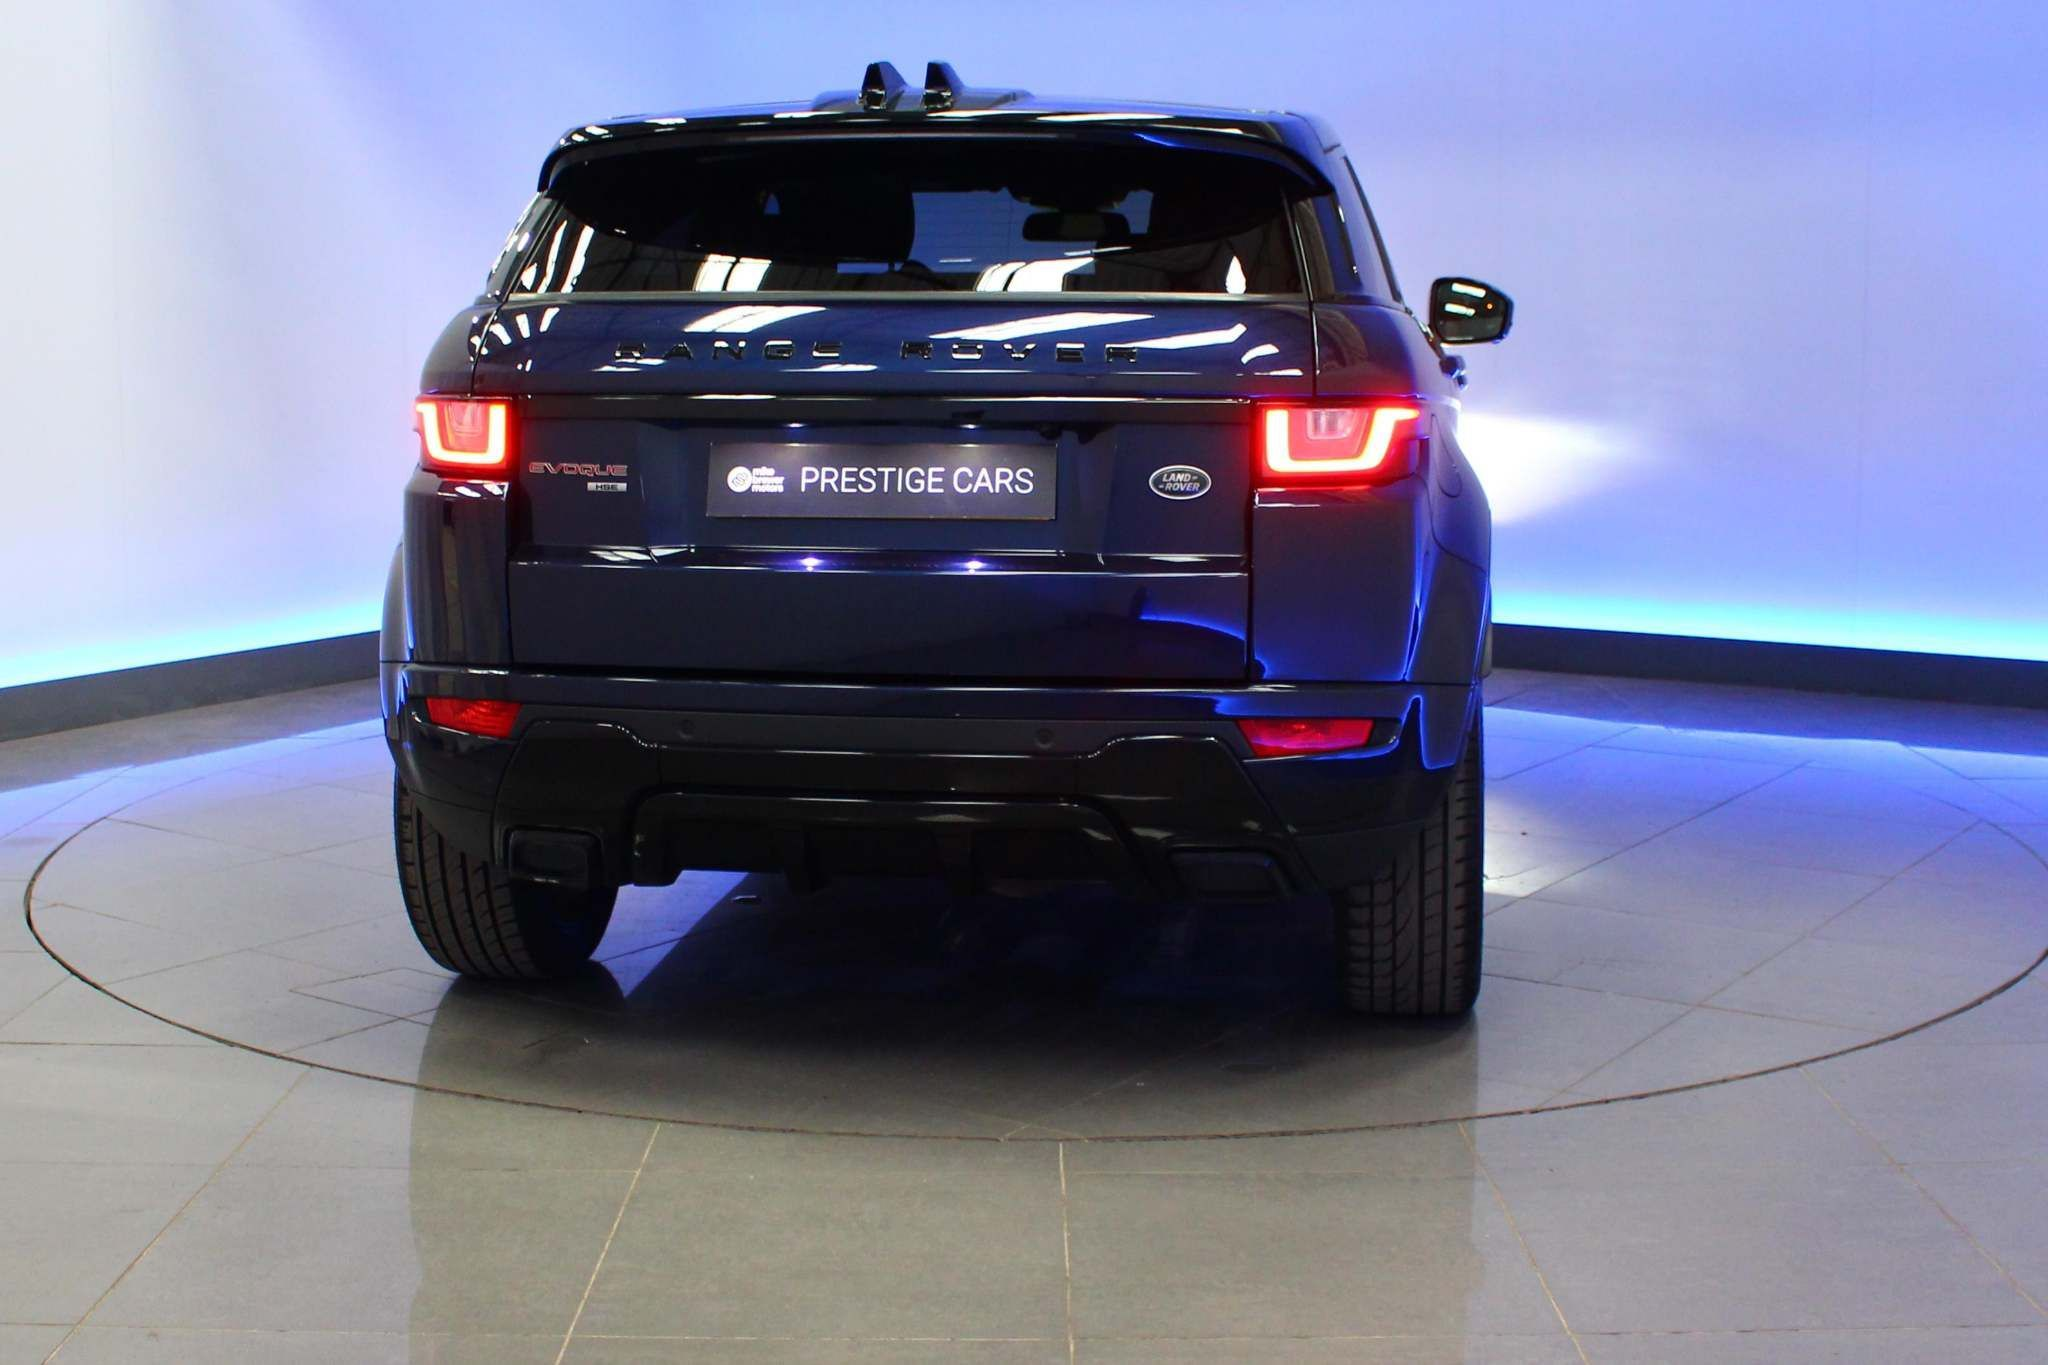 Used Land Rover Range Rover Evoque 2.0 Si4 Hse Dynamic Lux Auto 4wd (s/s) 5dr